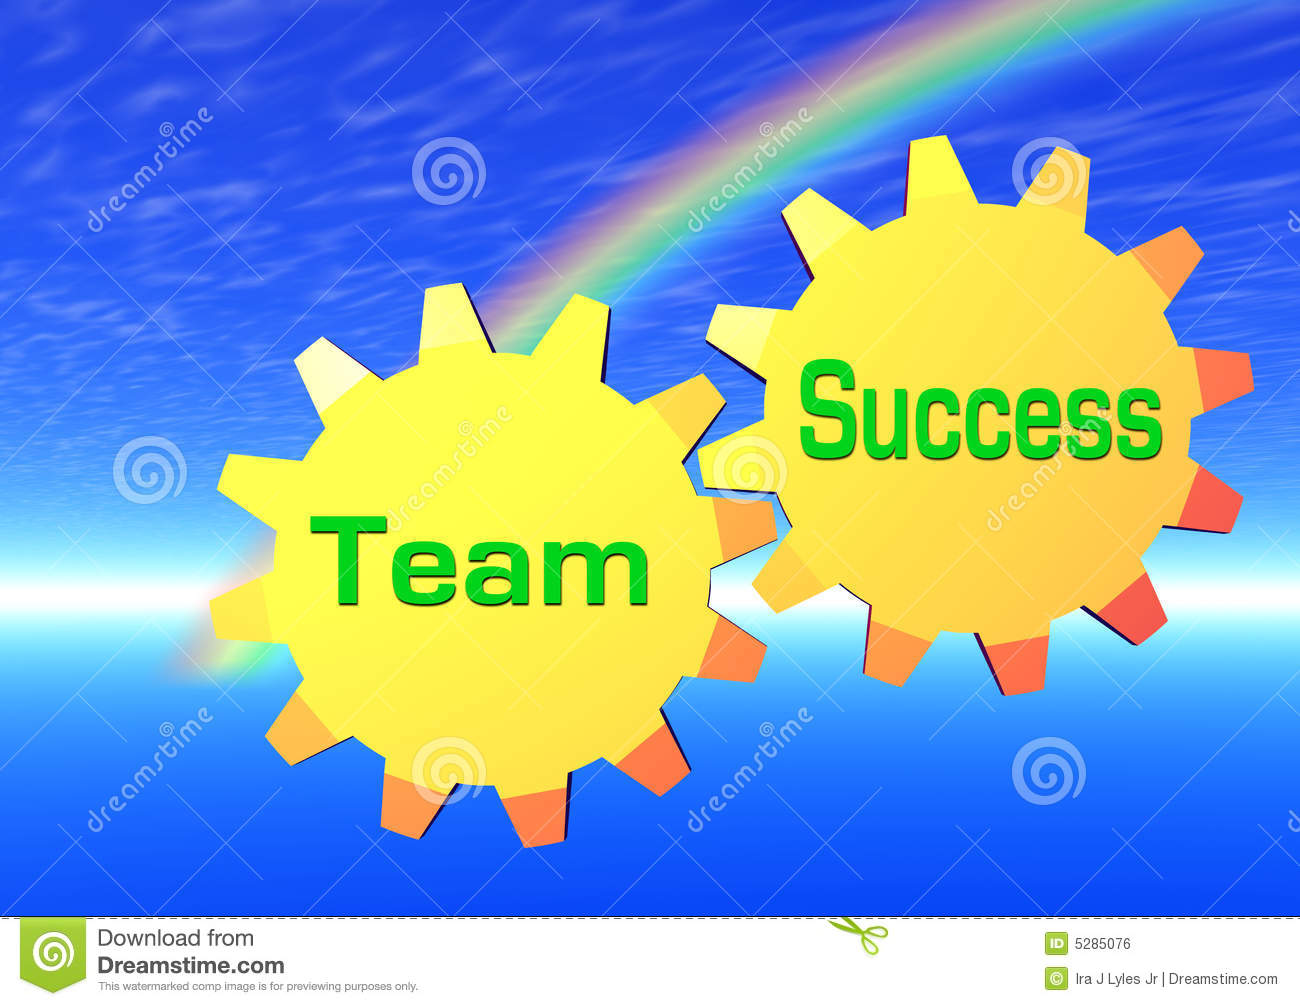 Team Success Royalty Free Stock Image - Image: 5285076